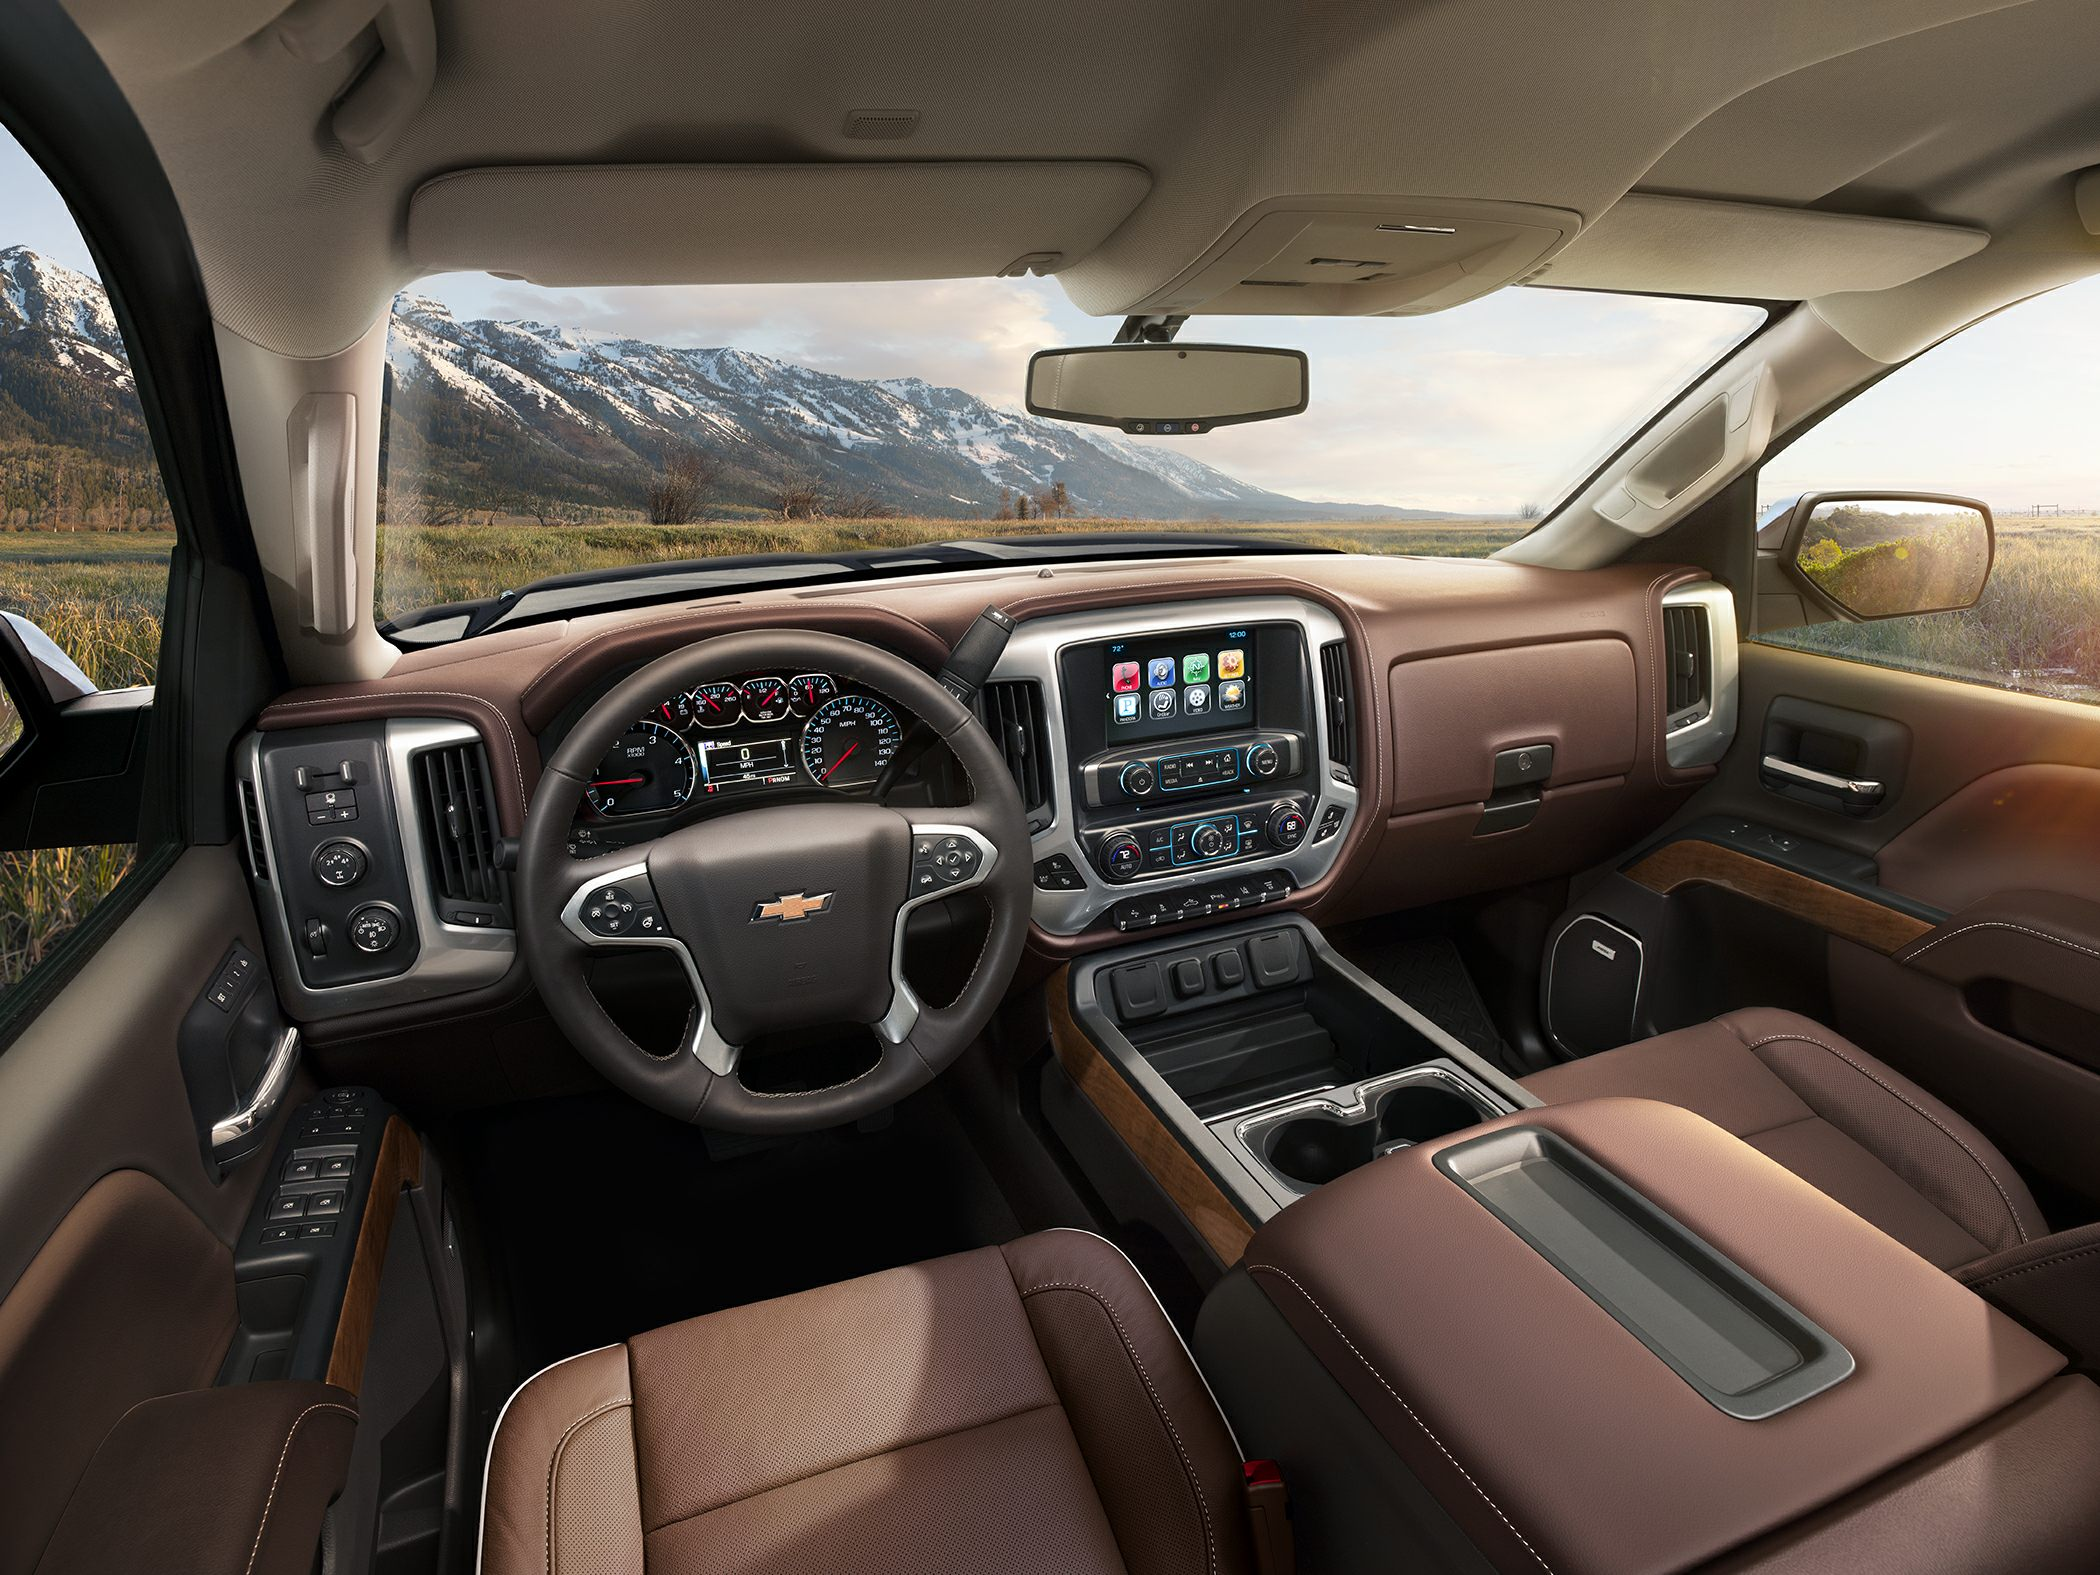 2019 chevrolet silverado 3500hd deals prices incentives. Black Bedroom Furniture Sets. Home Design Ideas